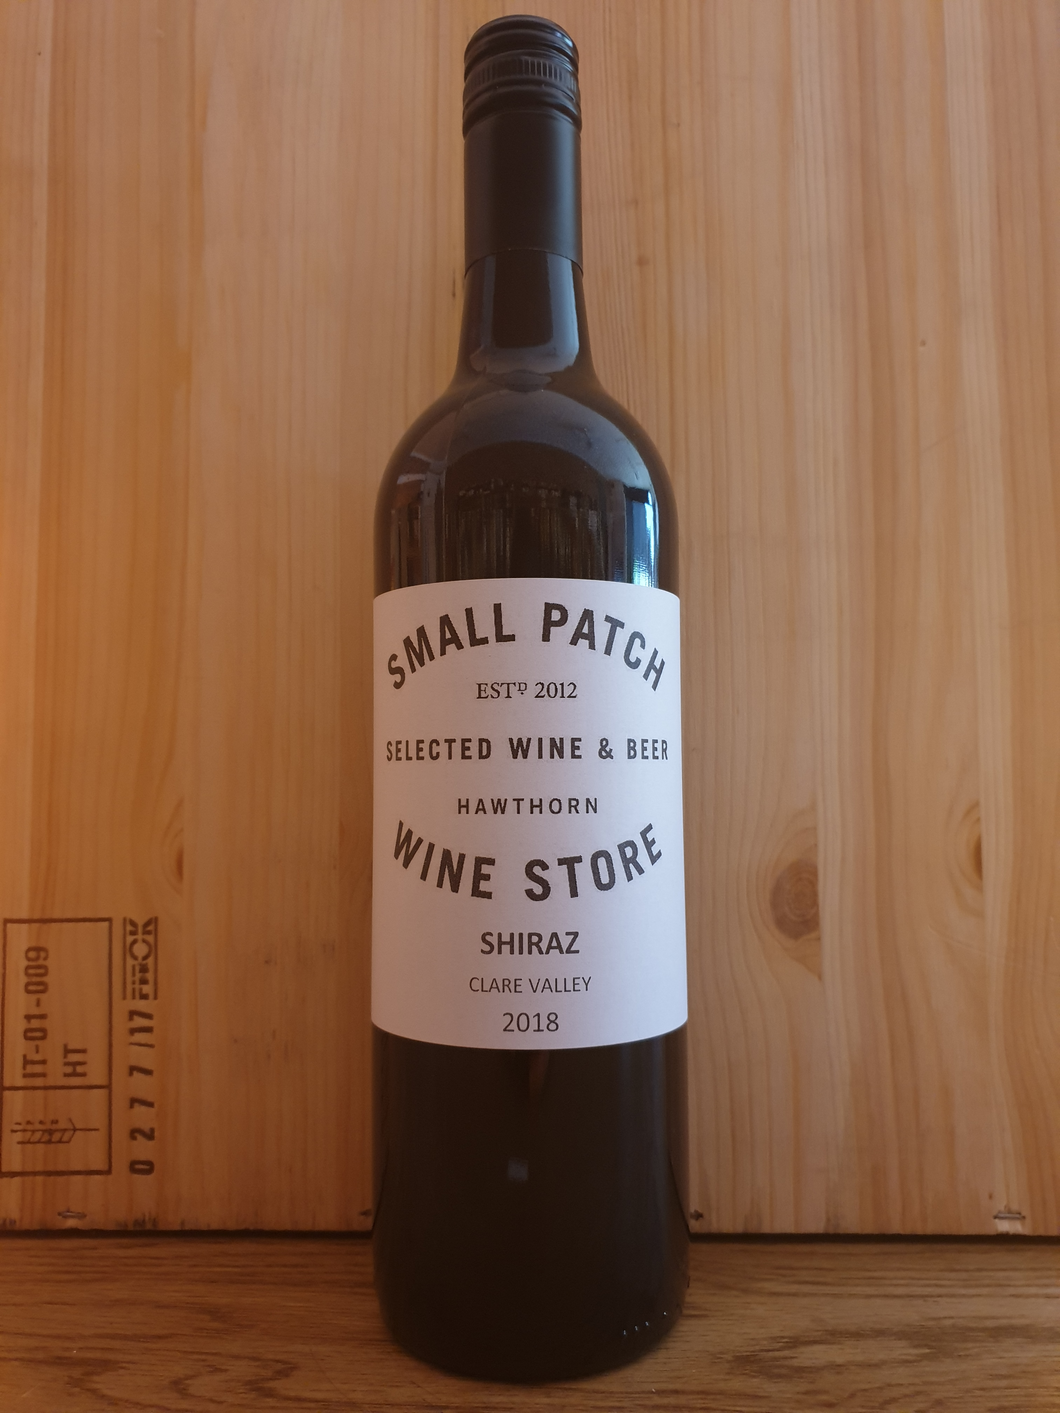 Small Patch Shiraz Clare Valley 2018